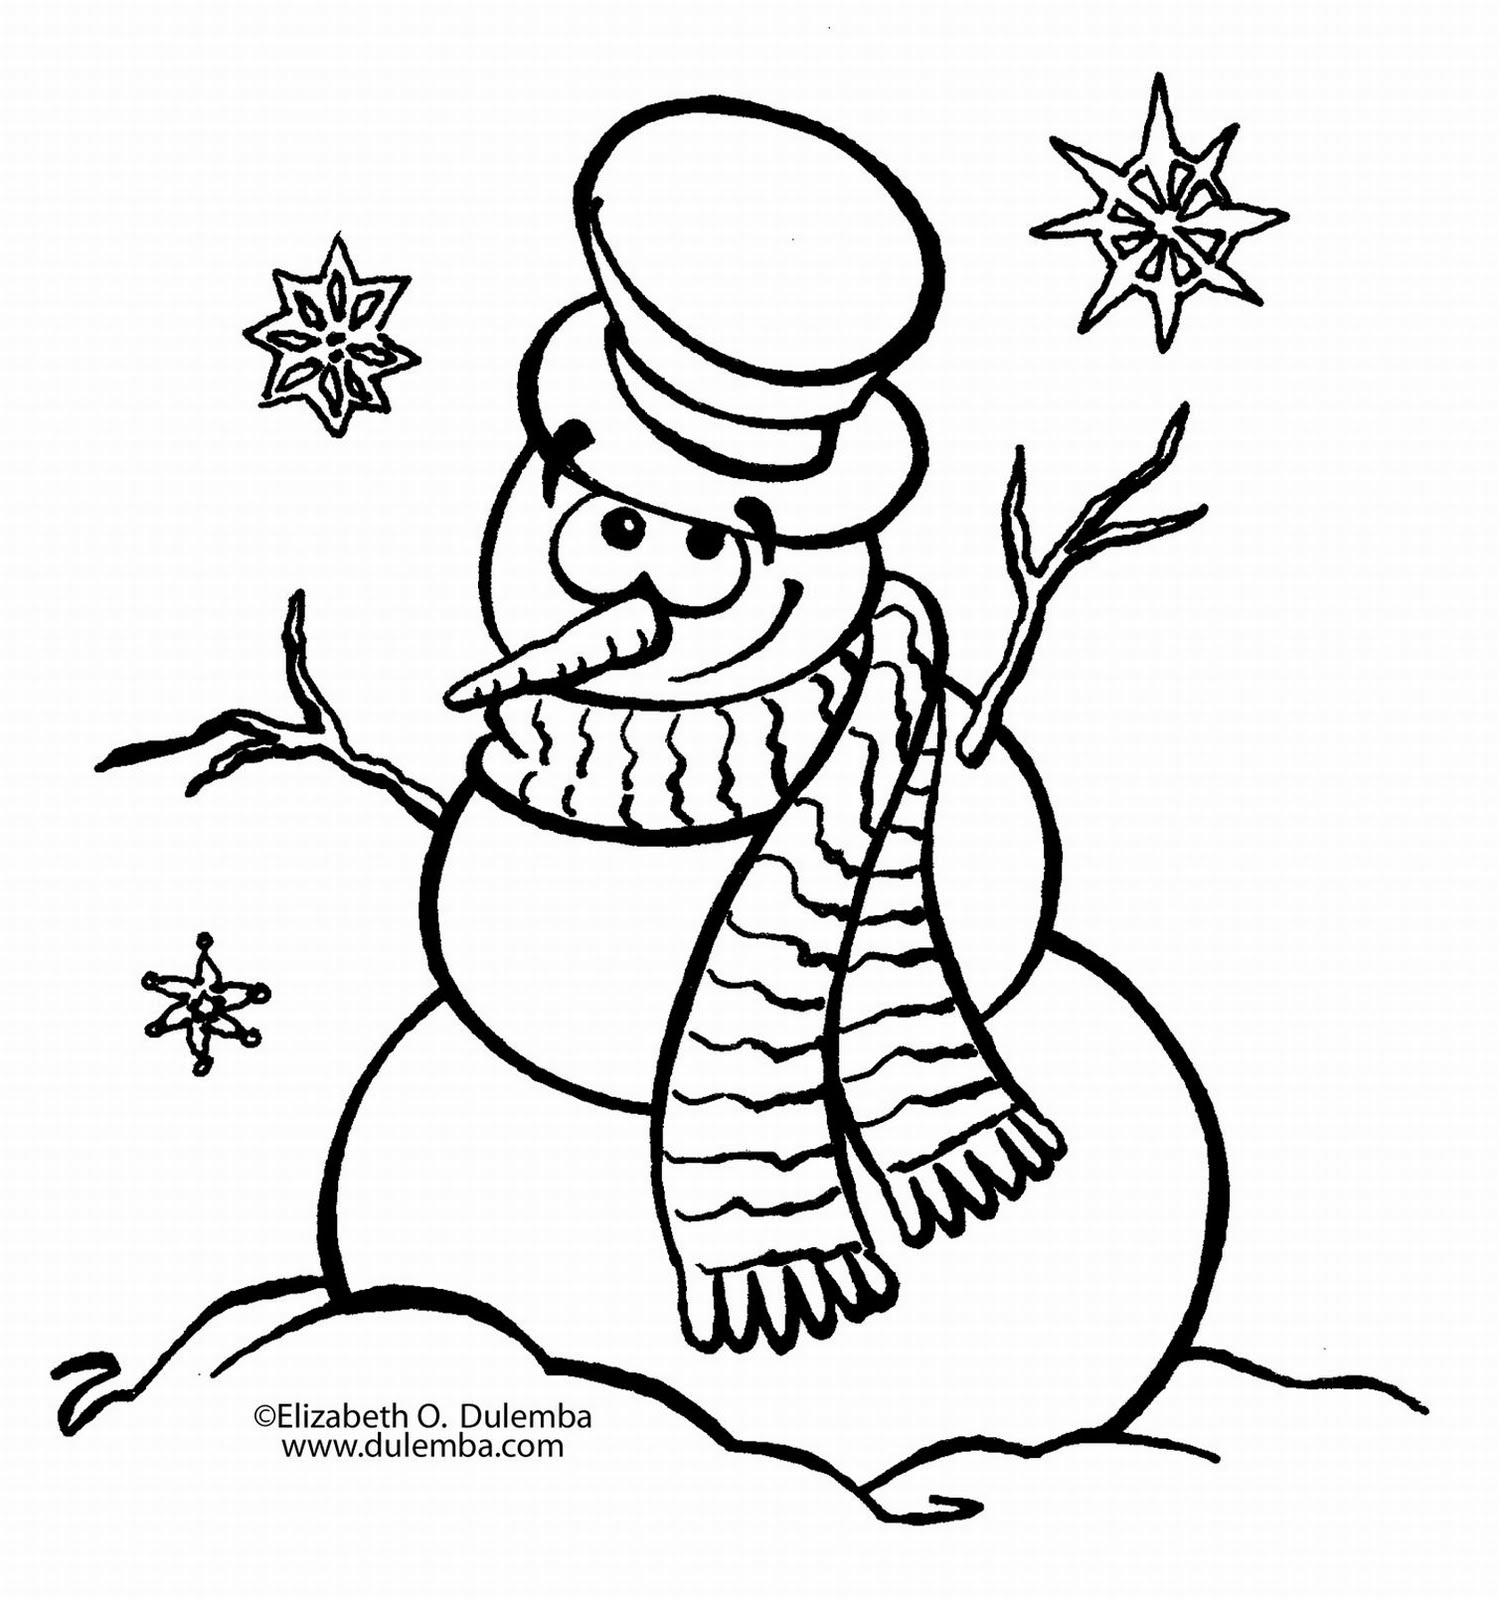 blank coloring pages - blank snowman coloring pages